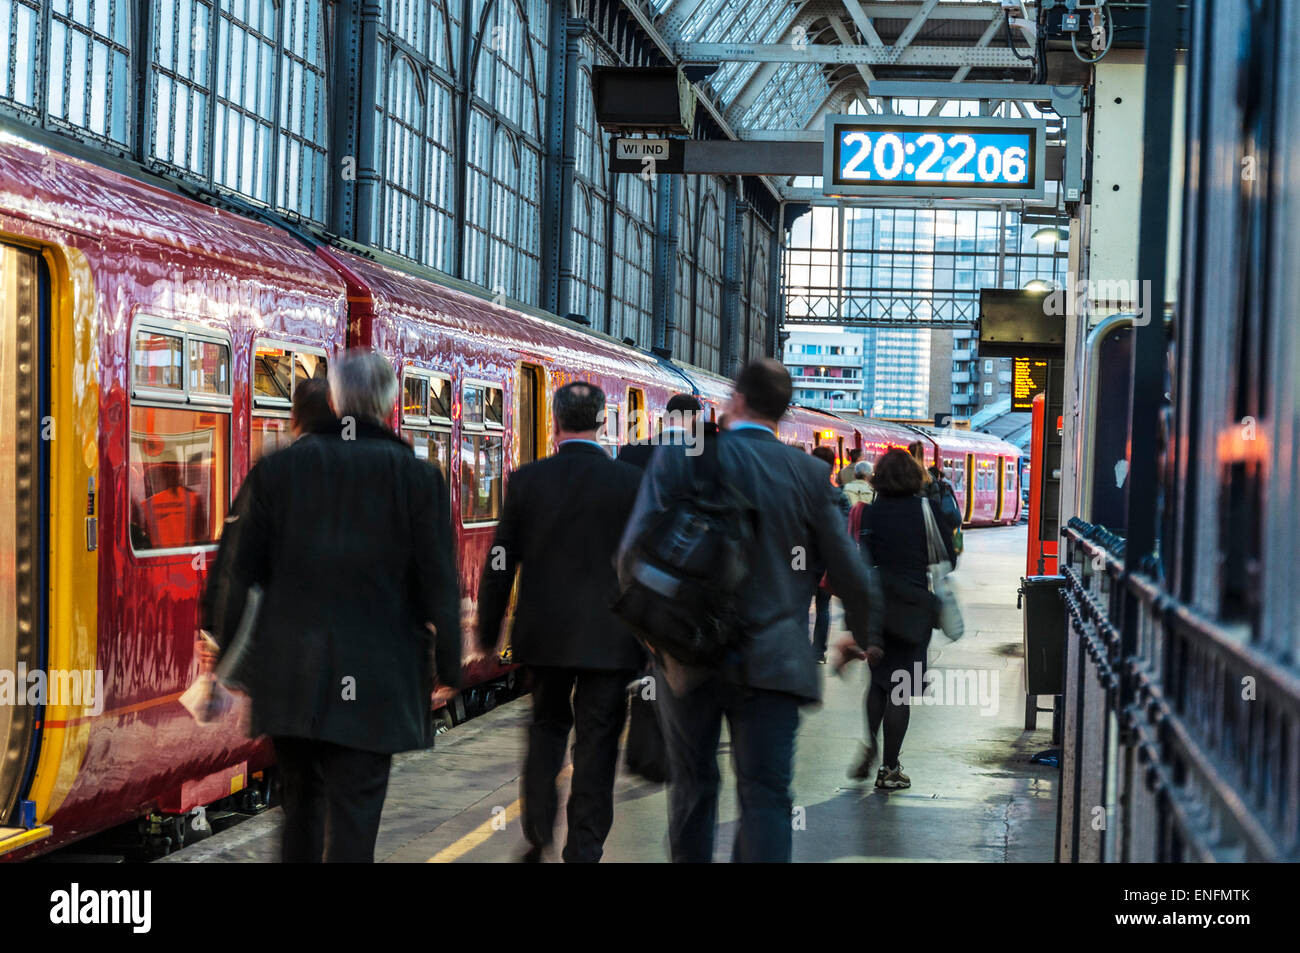 Commuters in motion going home on a train platform from London Waterloo railway station - Stock Image